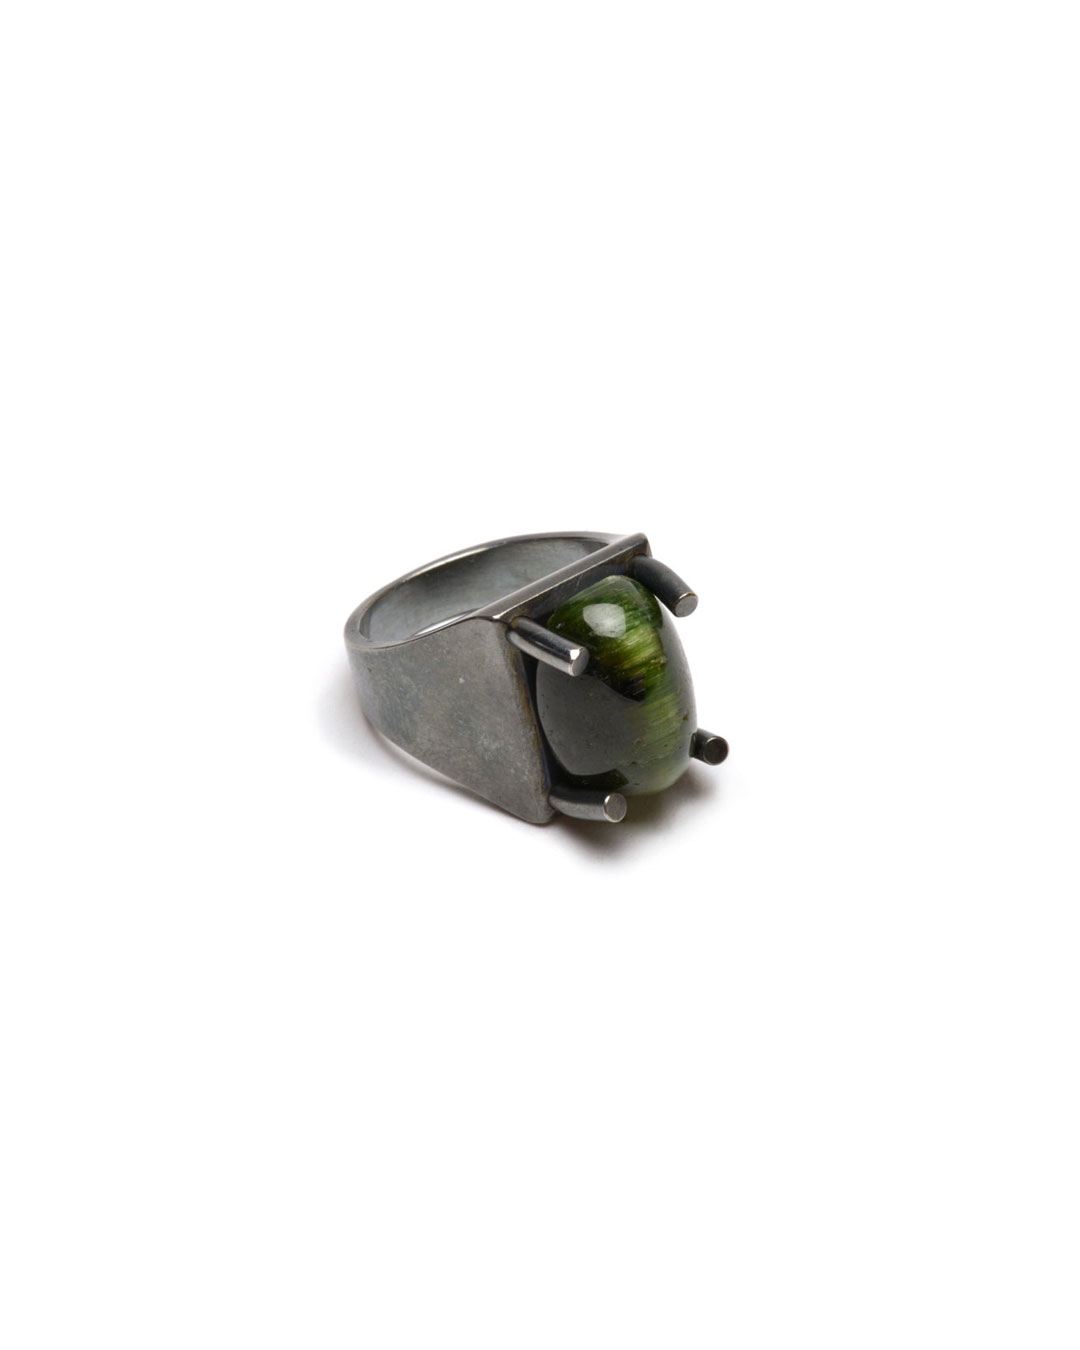 Ute Eitzenhöfer, untitled, 2010, ring; silver, tourmaline, 30 x 20 x 15 mm, €500